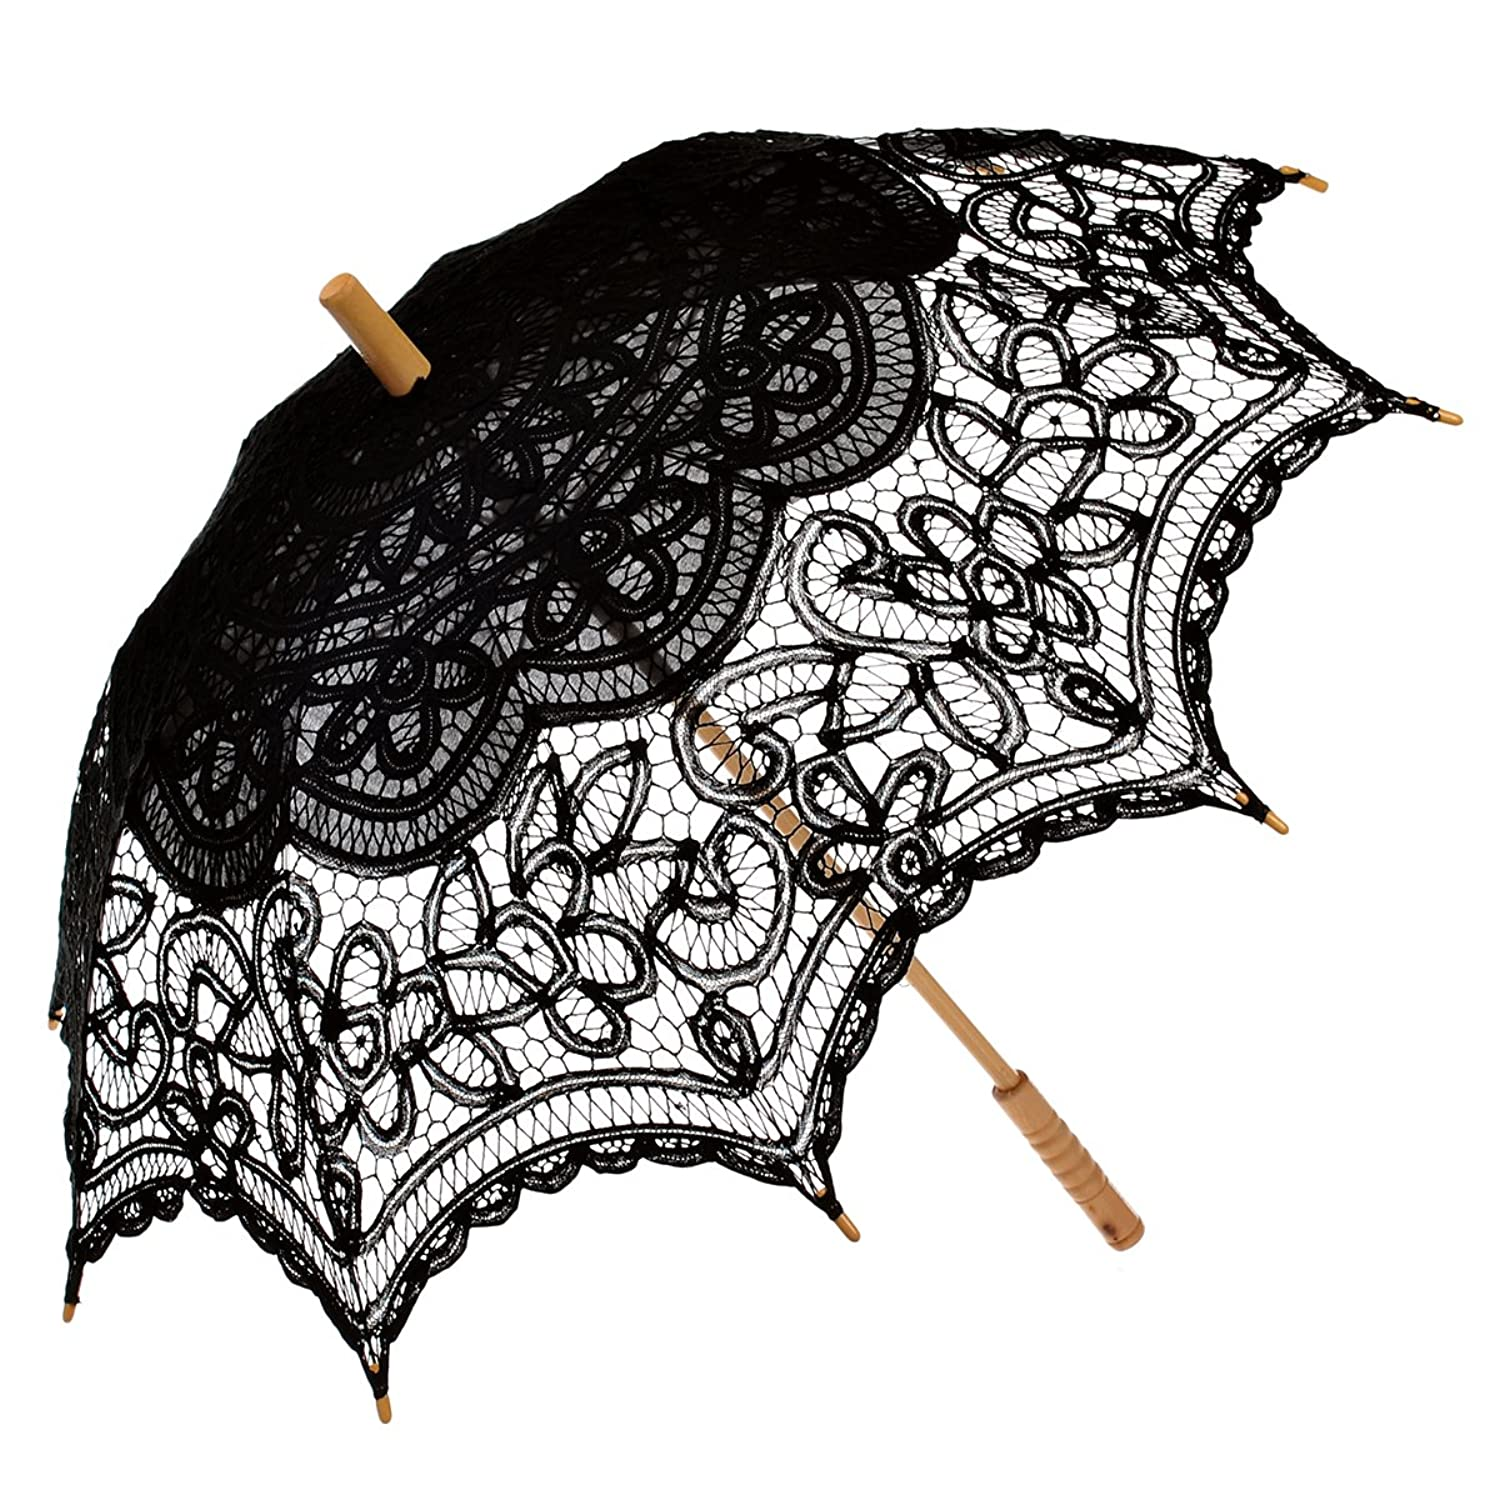 Make a Victorian Carriage Parasol  Lace Umbrella Photo Props Decoration                                             $24.99 AT vintagedancer.com